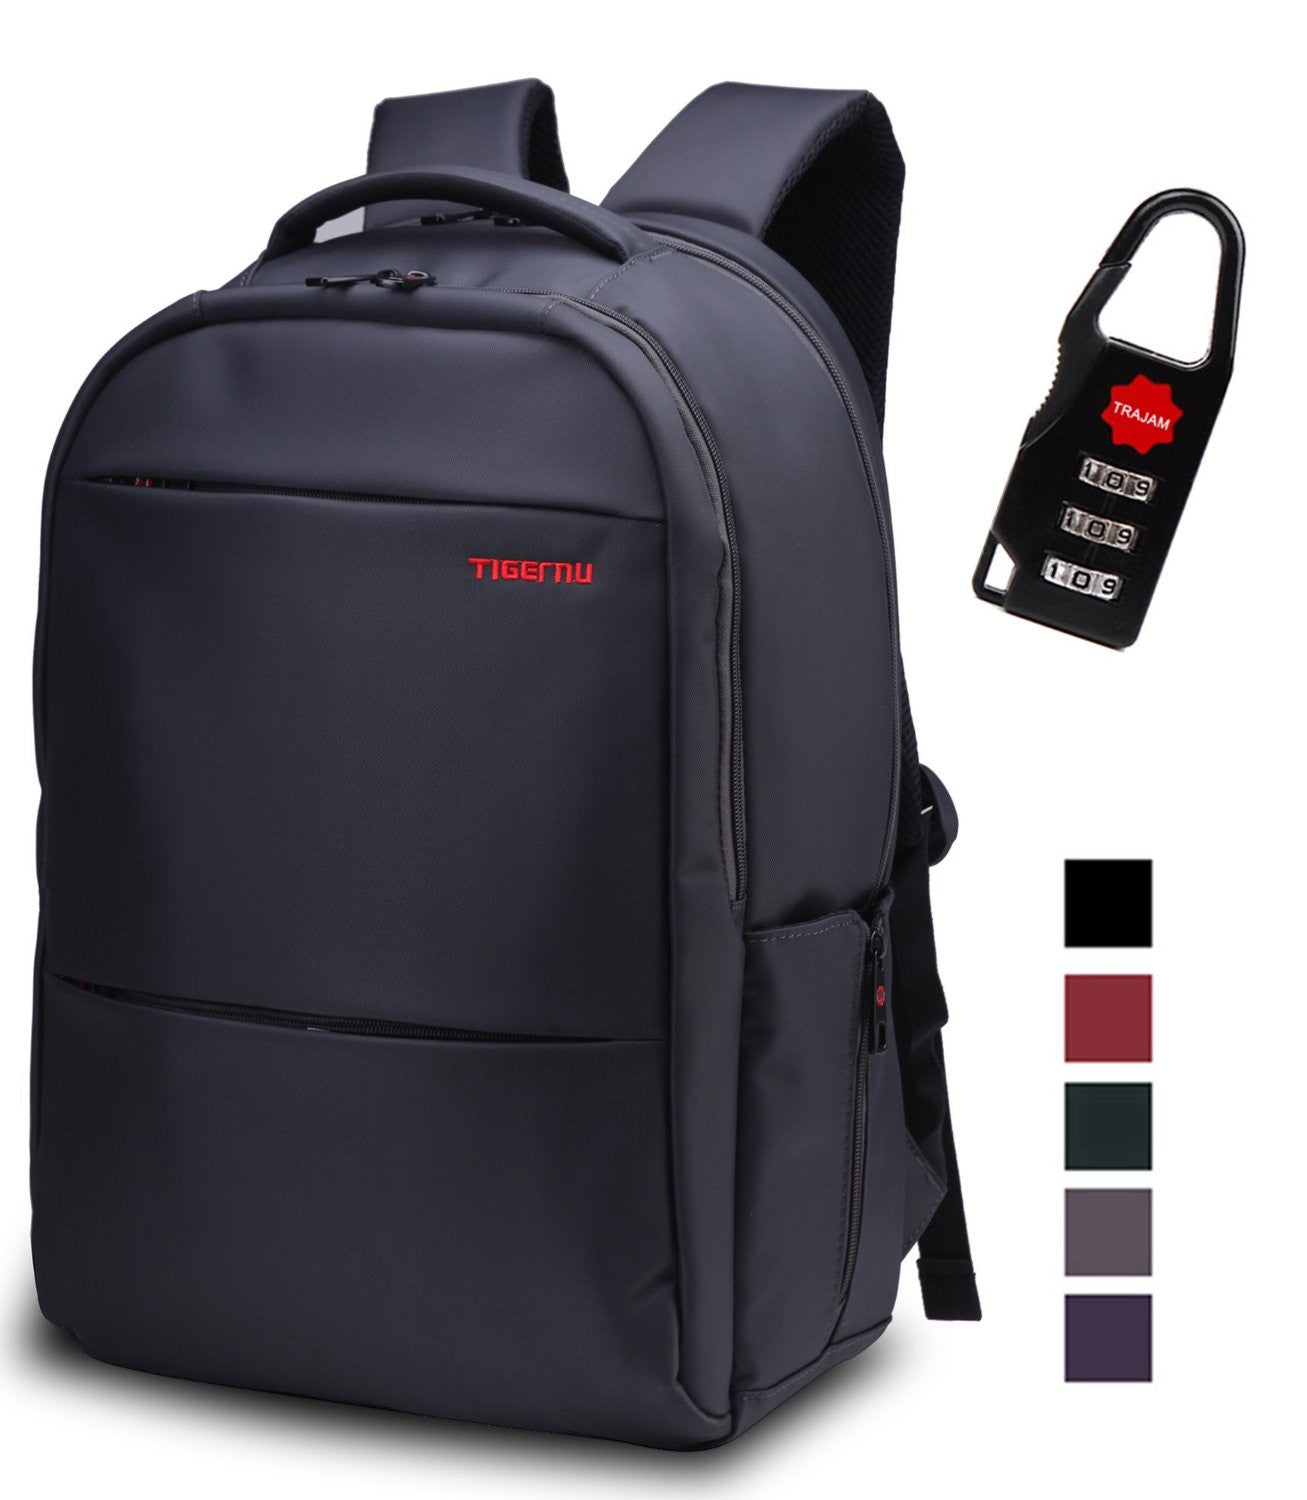 cff0600895 SAFE PACK - Laptop Backpack waterproof with anti-thef nylon Tigernu -  itechitrek